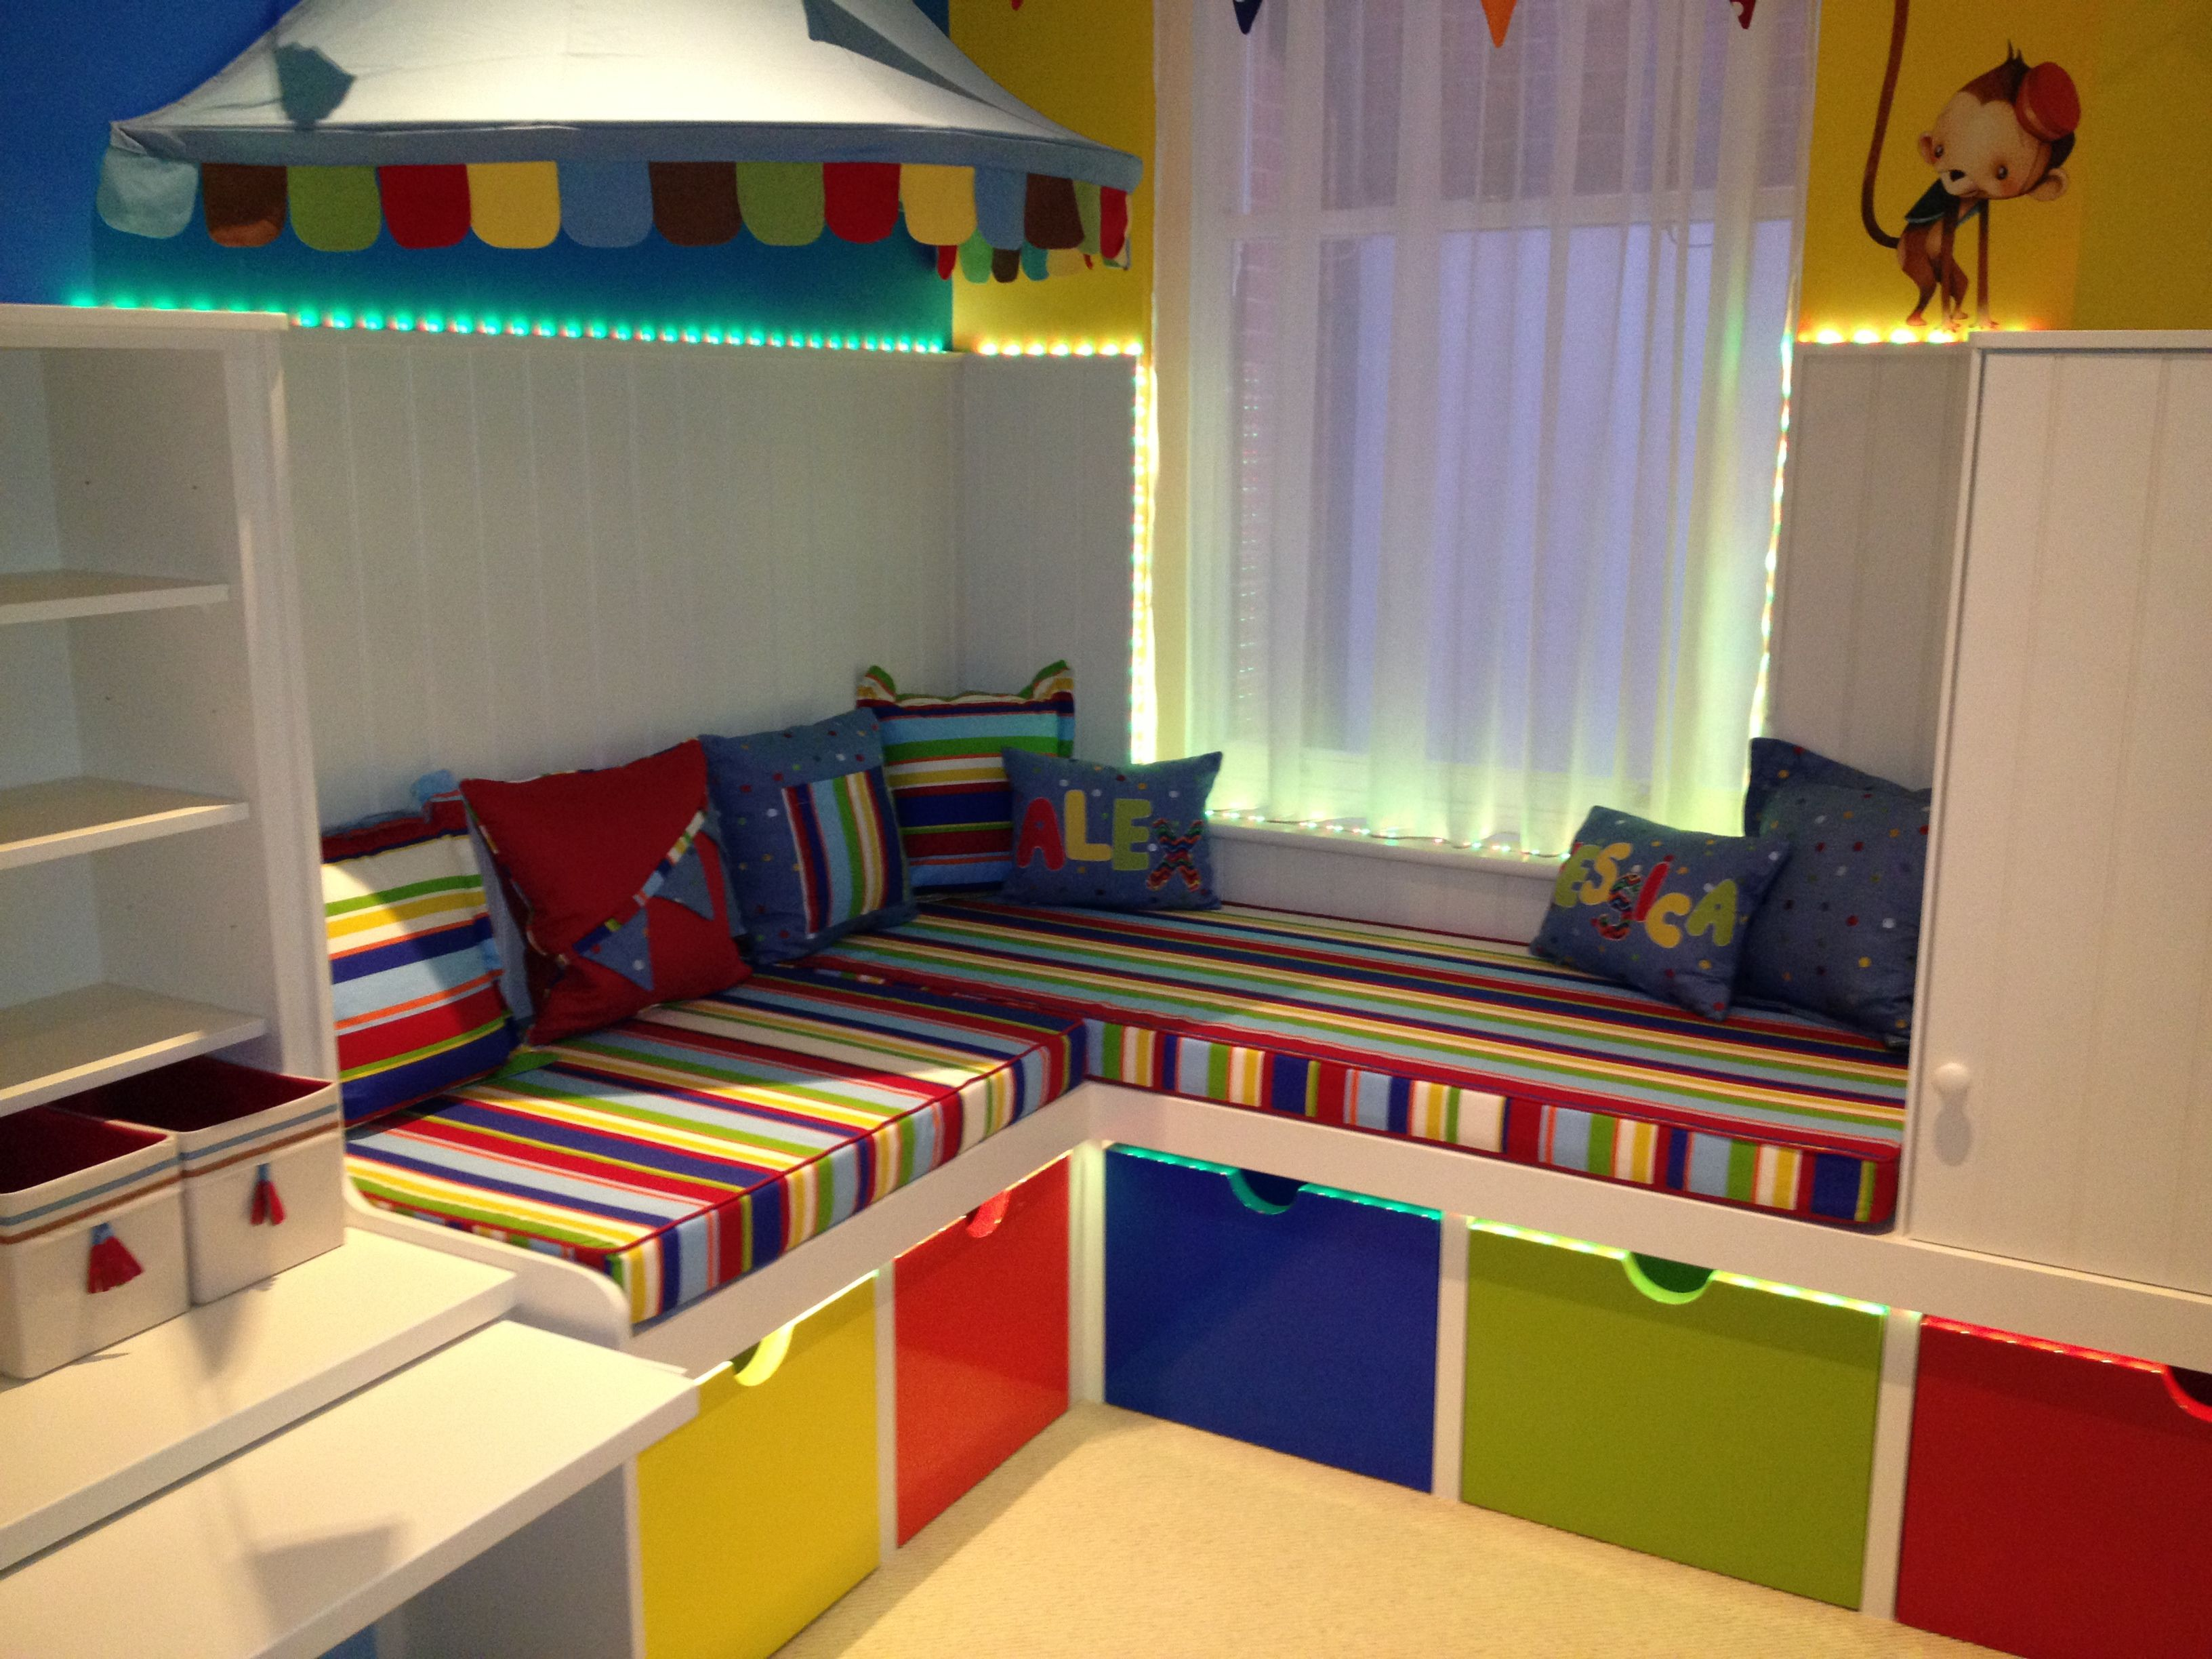 Childrens Play Room Glamorous We Created An Area For Books And Drawing Behind The Cloud Screen Design Ideas